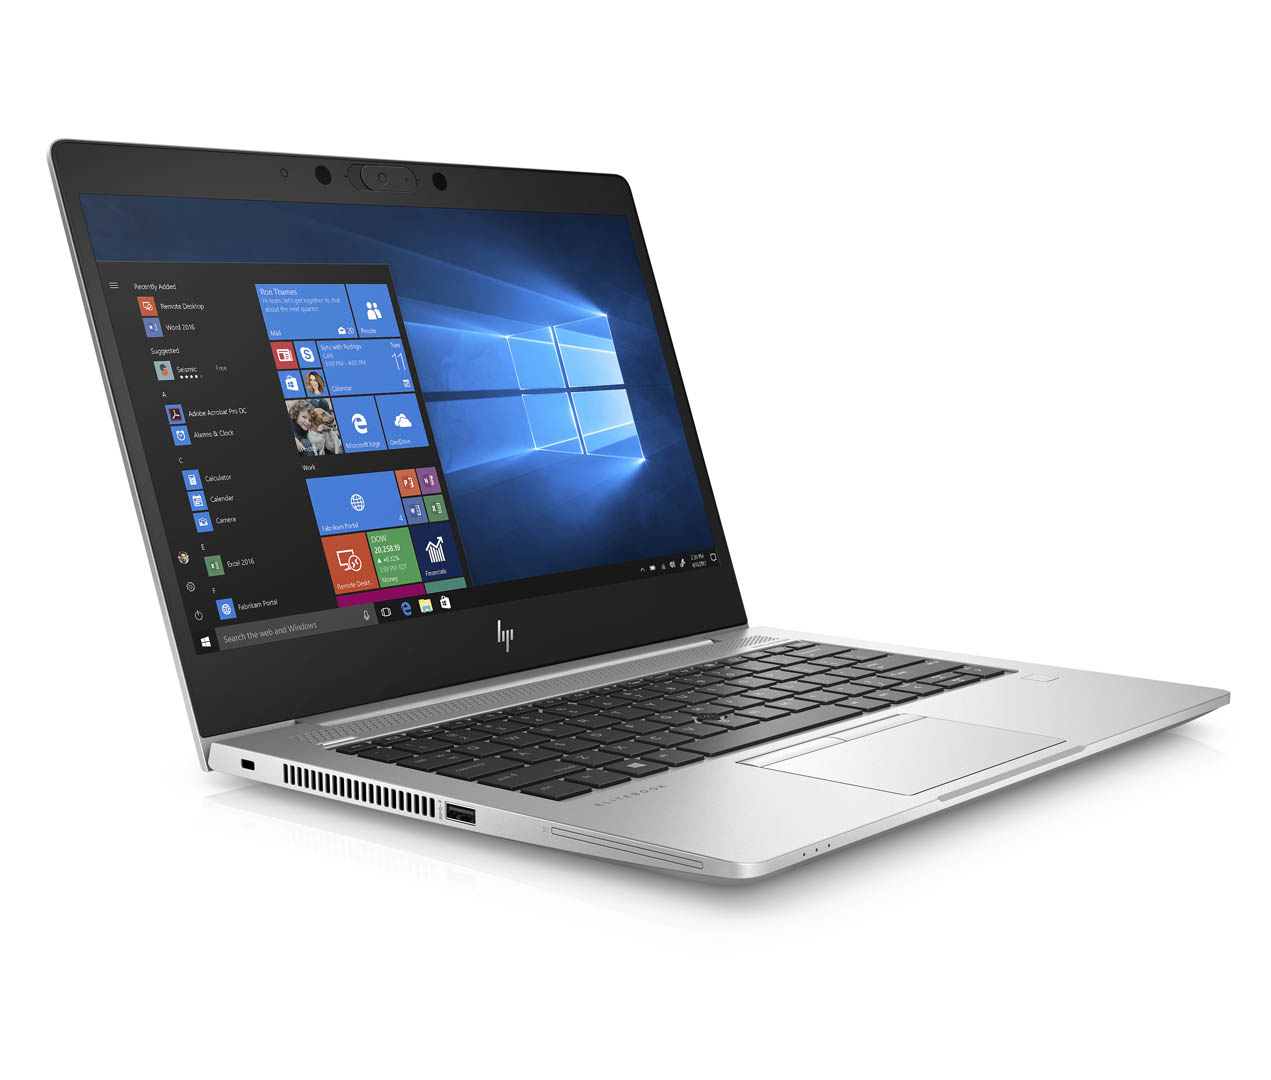 HP annuncia gli EliteBook 700 G6 e l'HP mt45 Mobile Thin Client 2